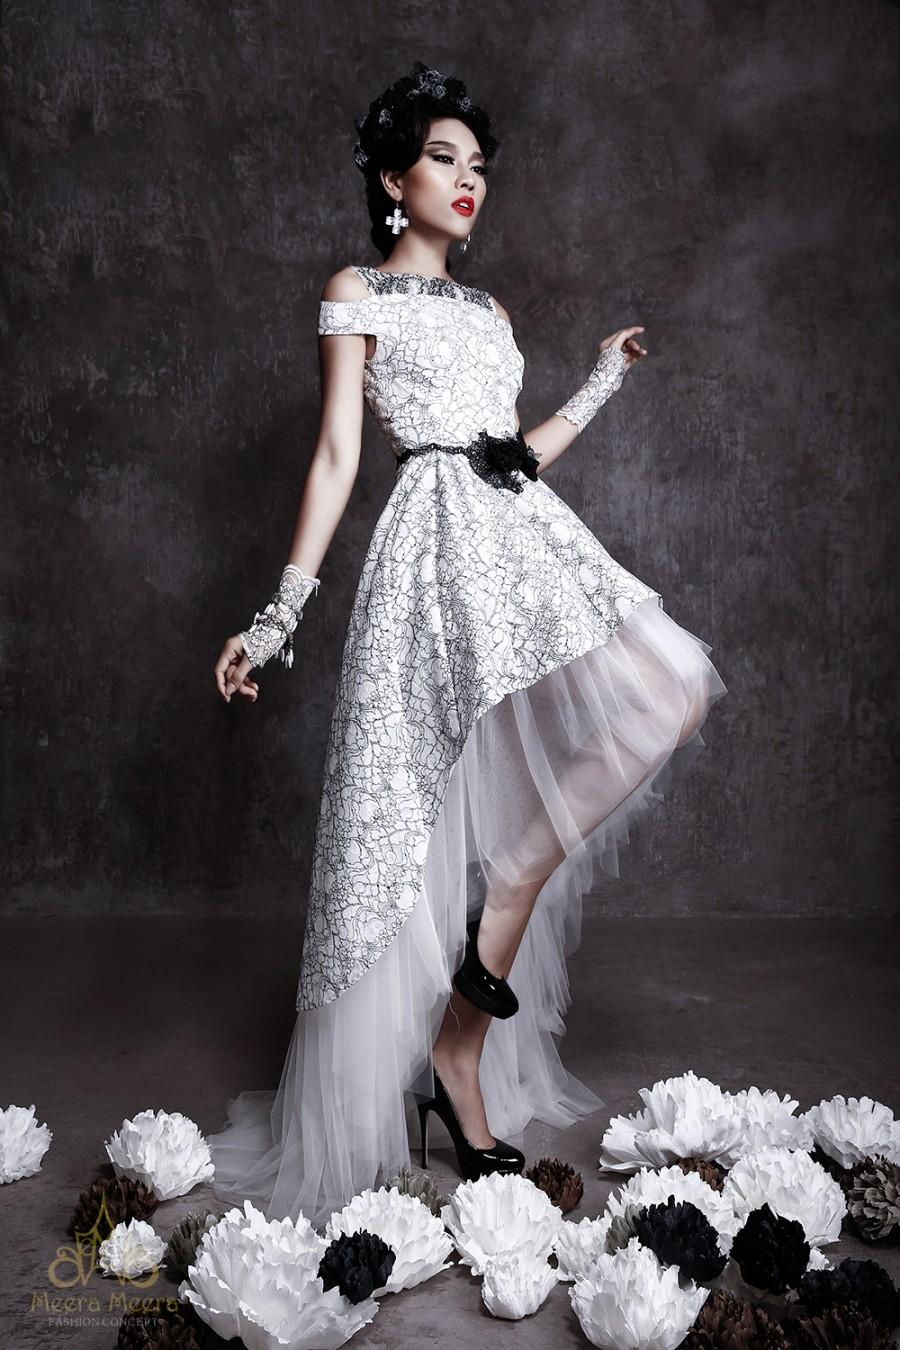 Pity, black and white lace wedding dresses congratulate, the